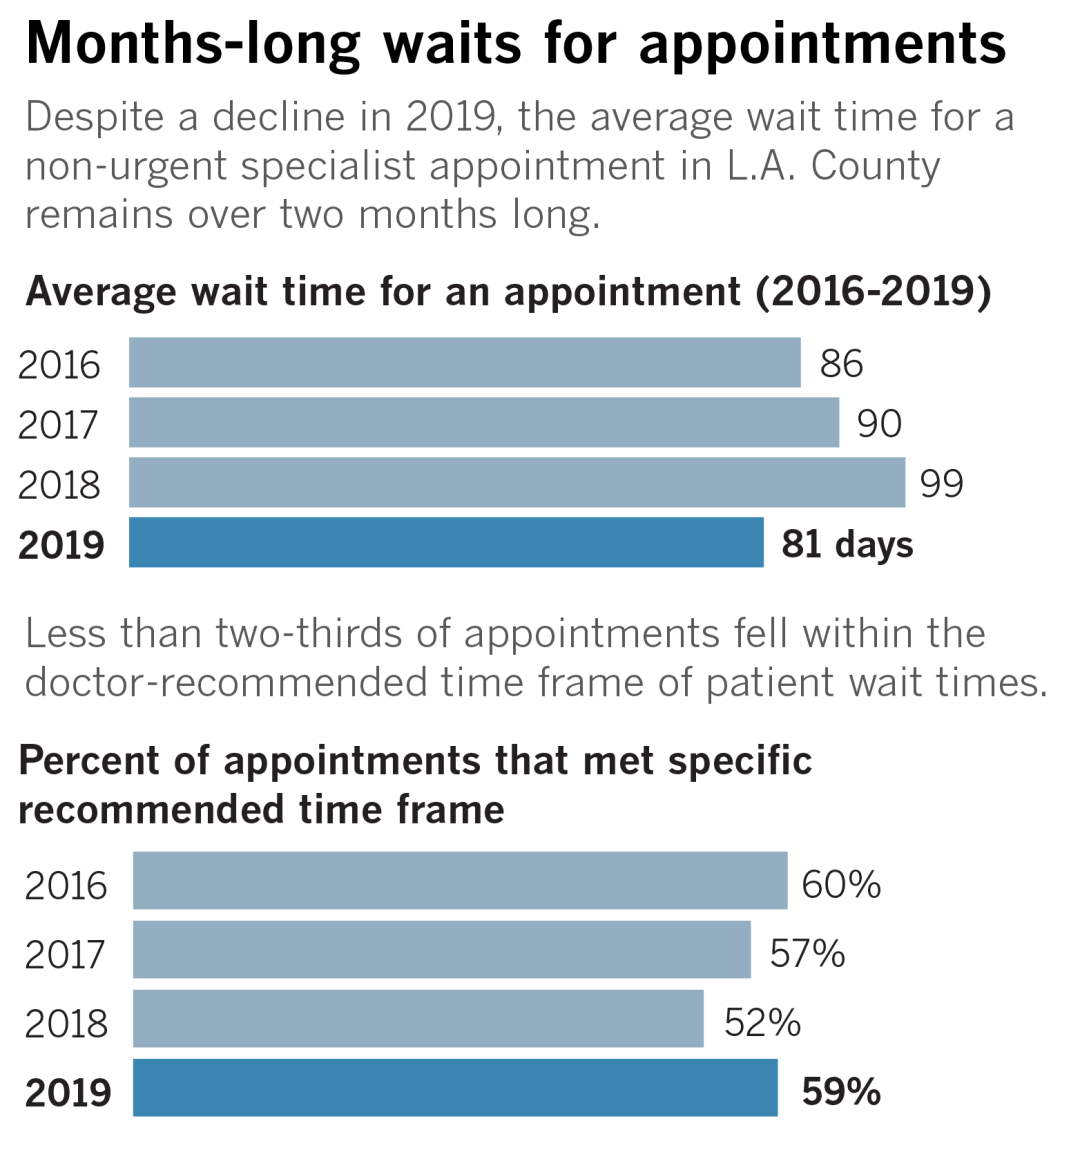 Chart showing wait times over two months long for appointments in L.A. County.